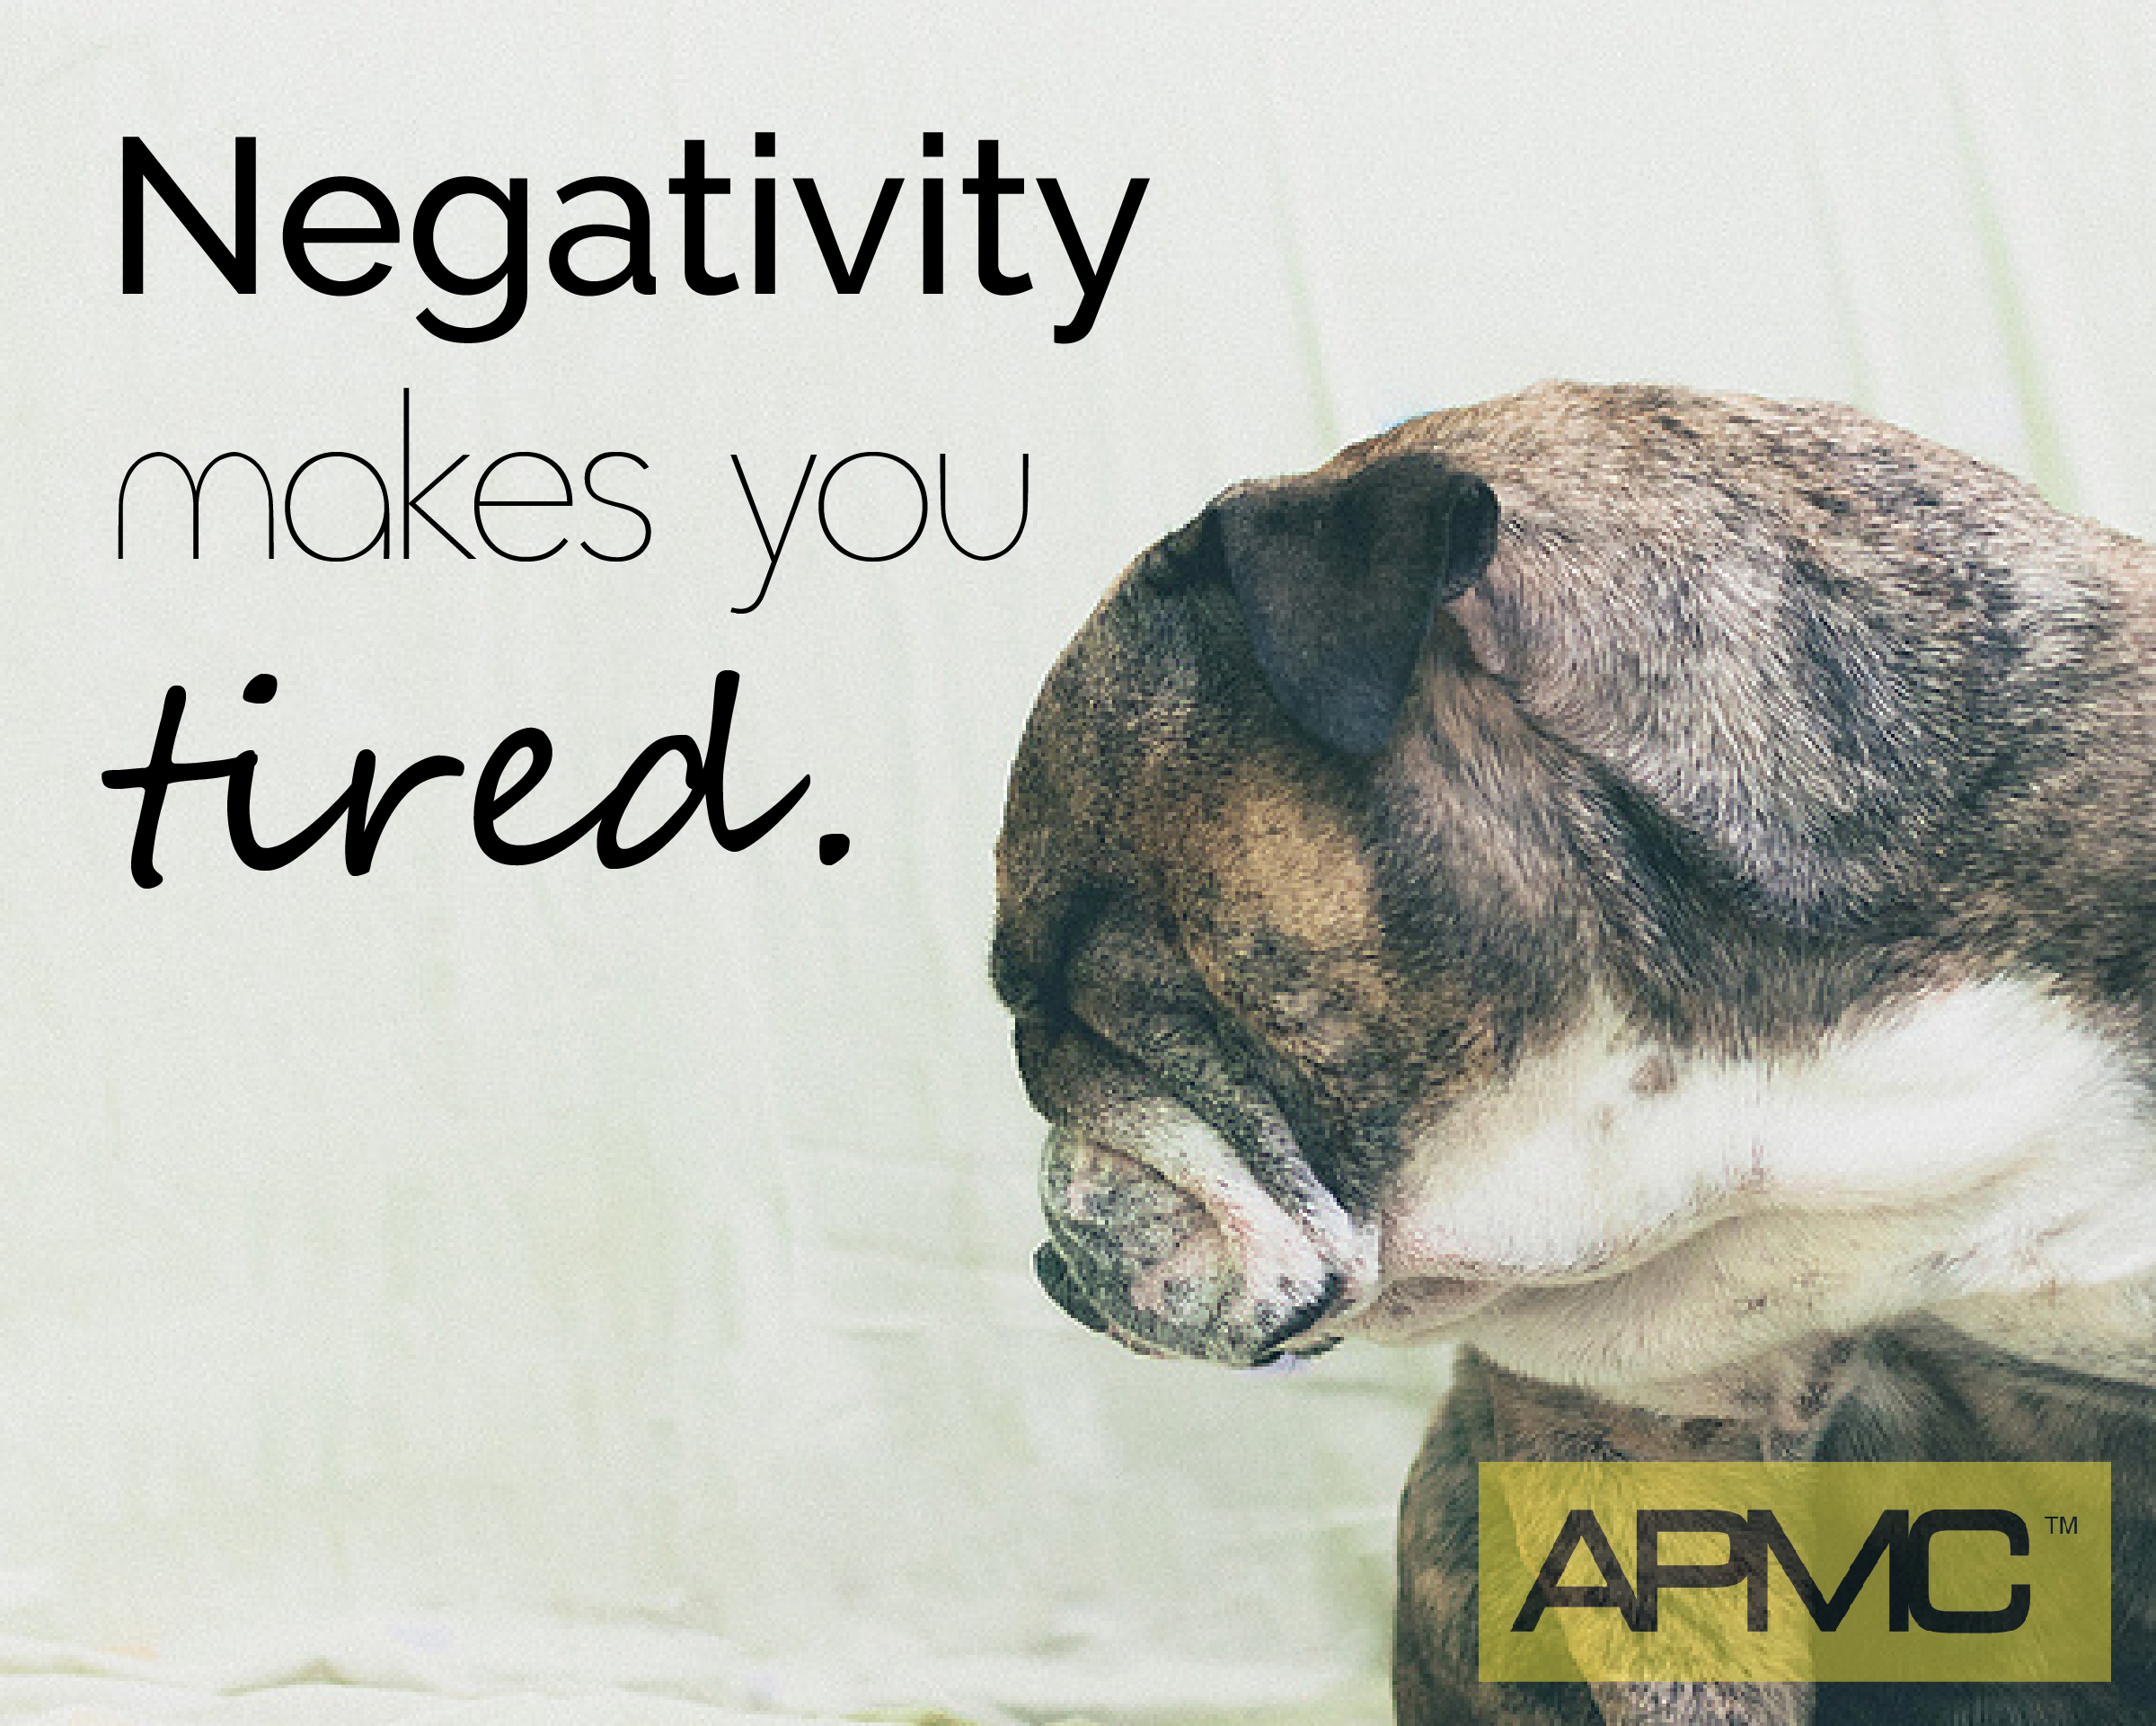 Negativity makes you tired